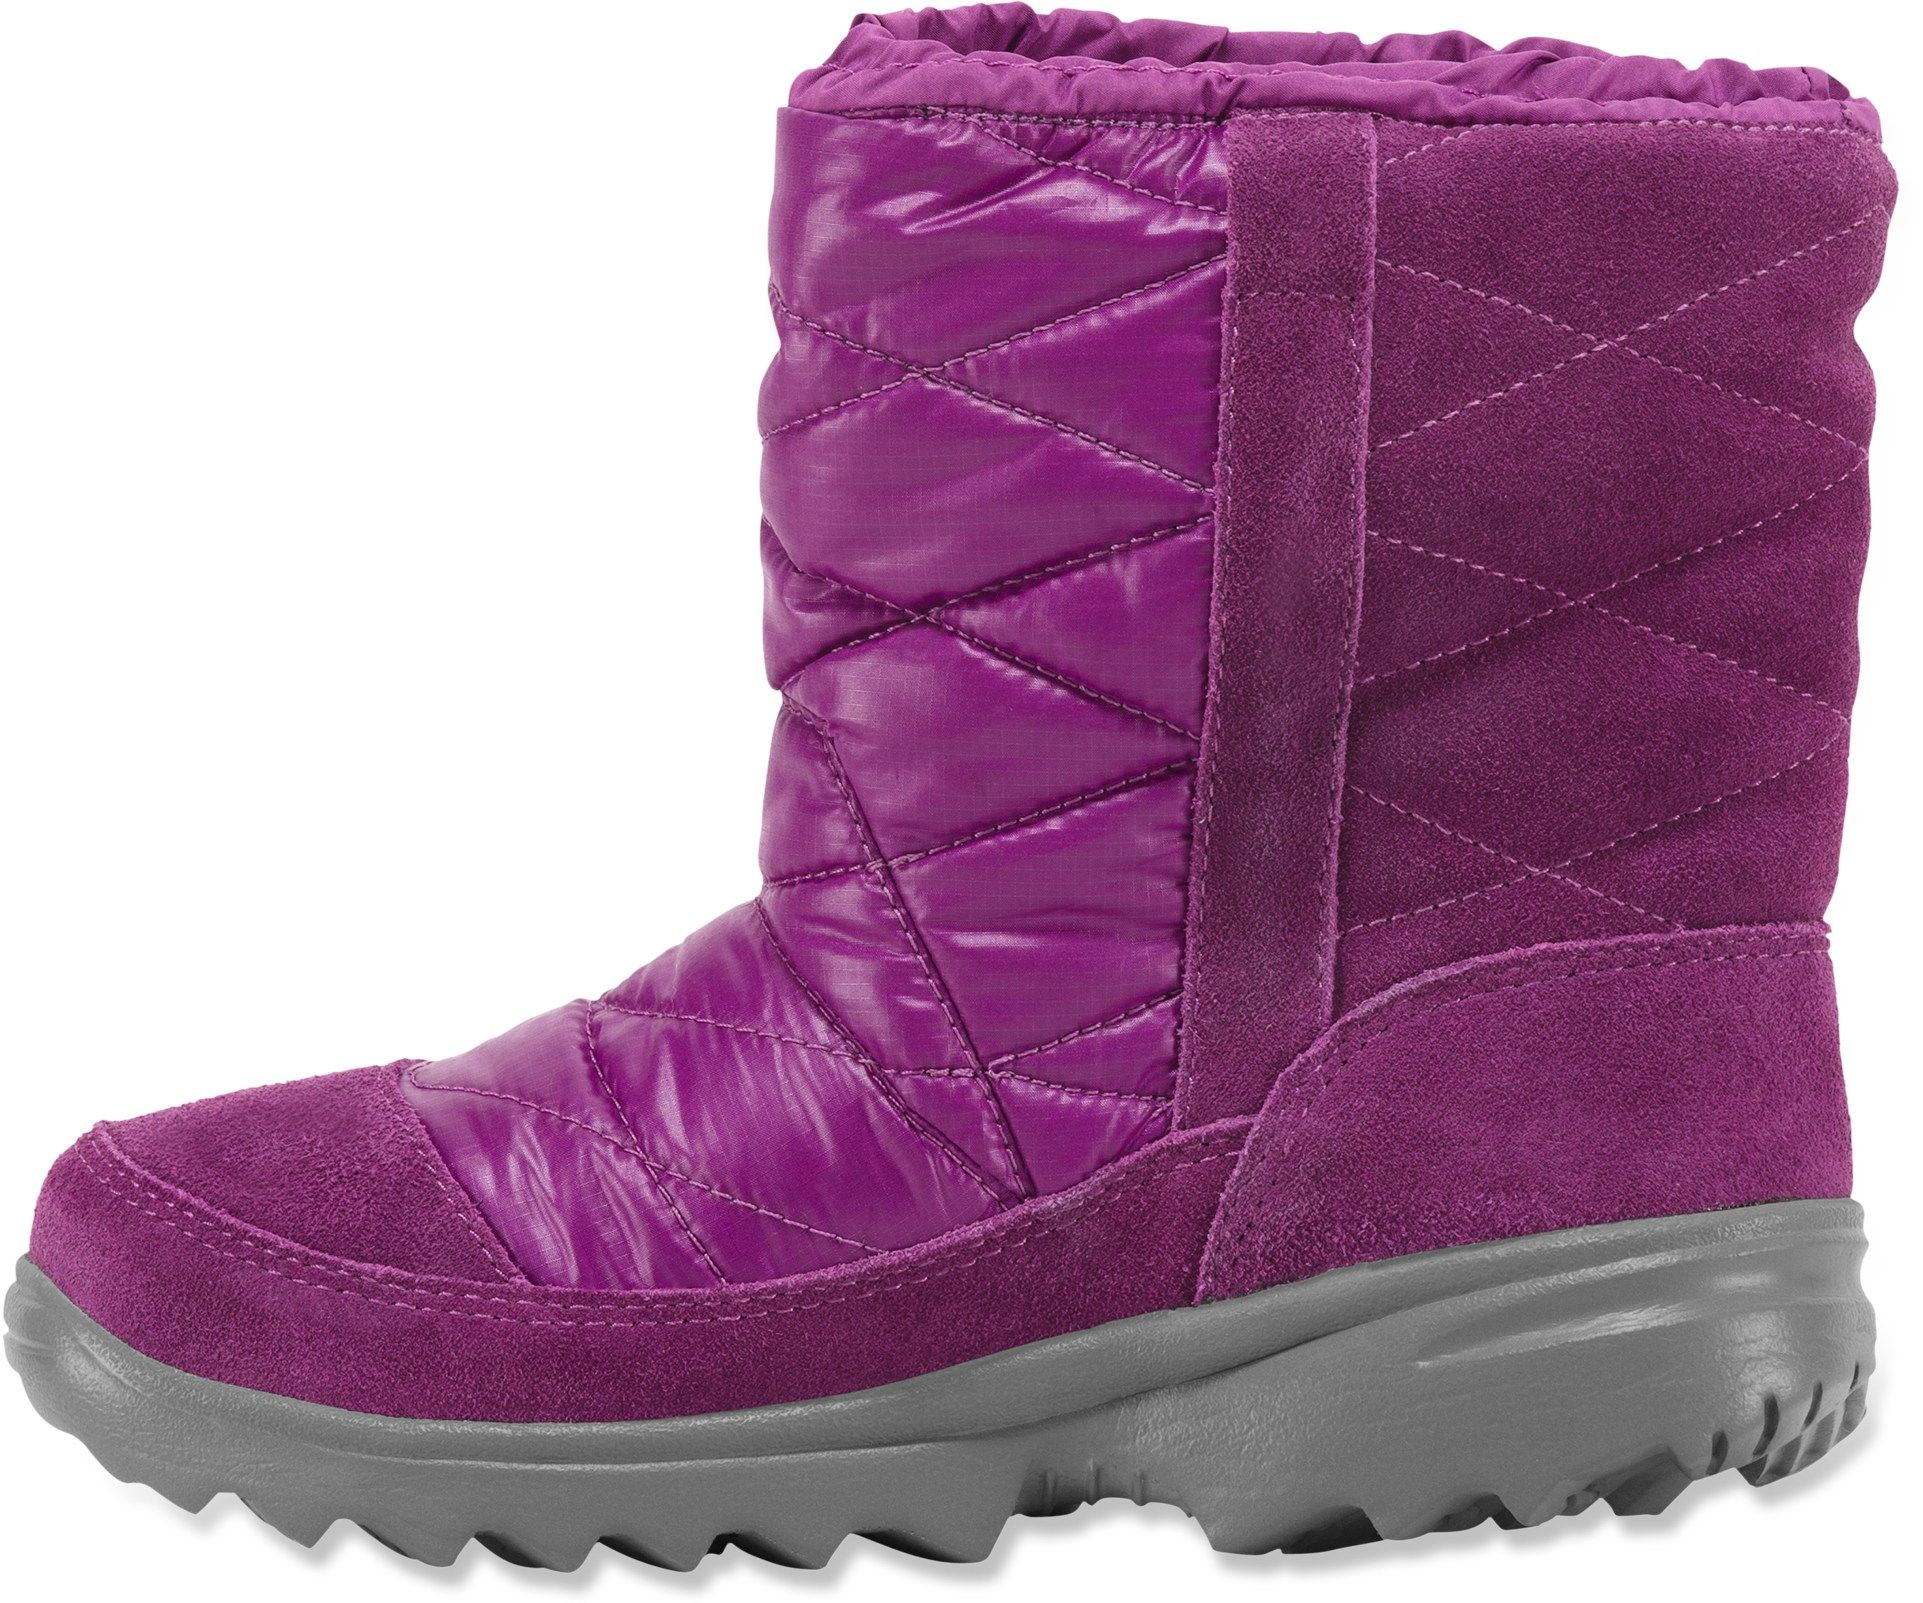 90a37008e The North Face Winter Camp Waterproof Boots - Kids' | REI Co-op ...